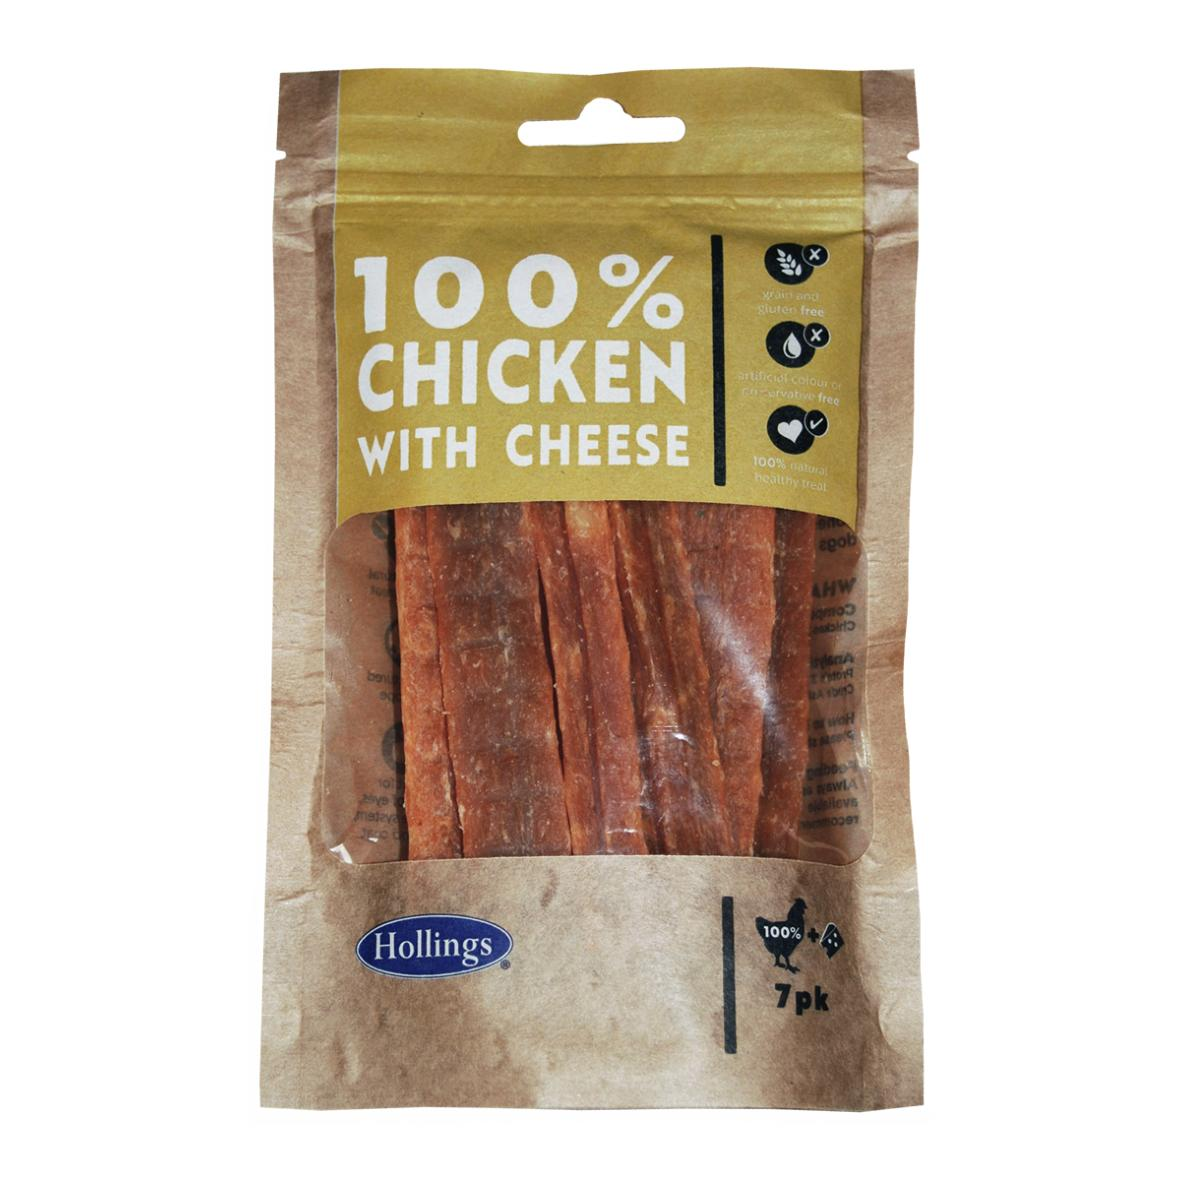 Hollings 100% Chicken with Cheese Bars 13cm 7pcs